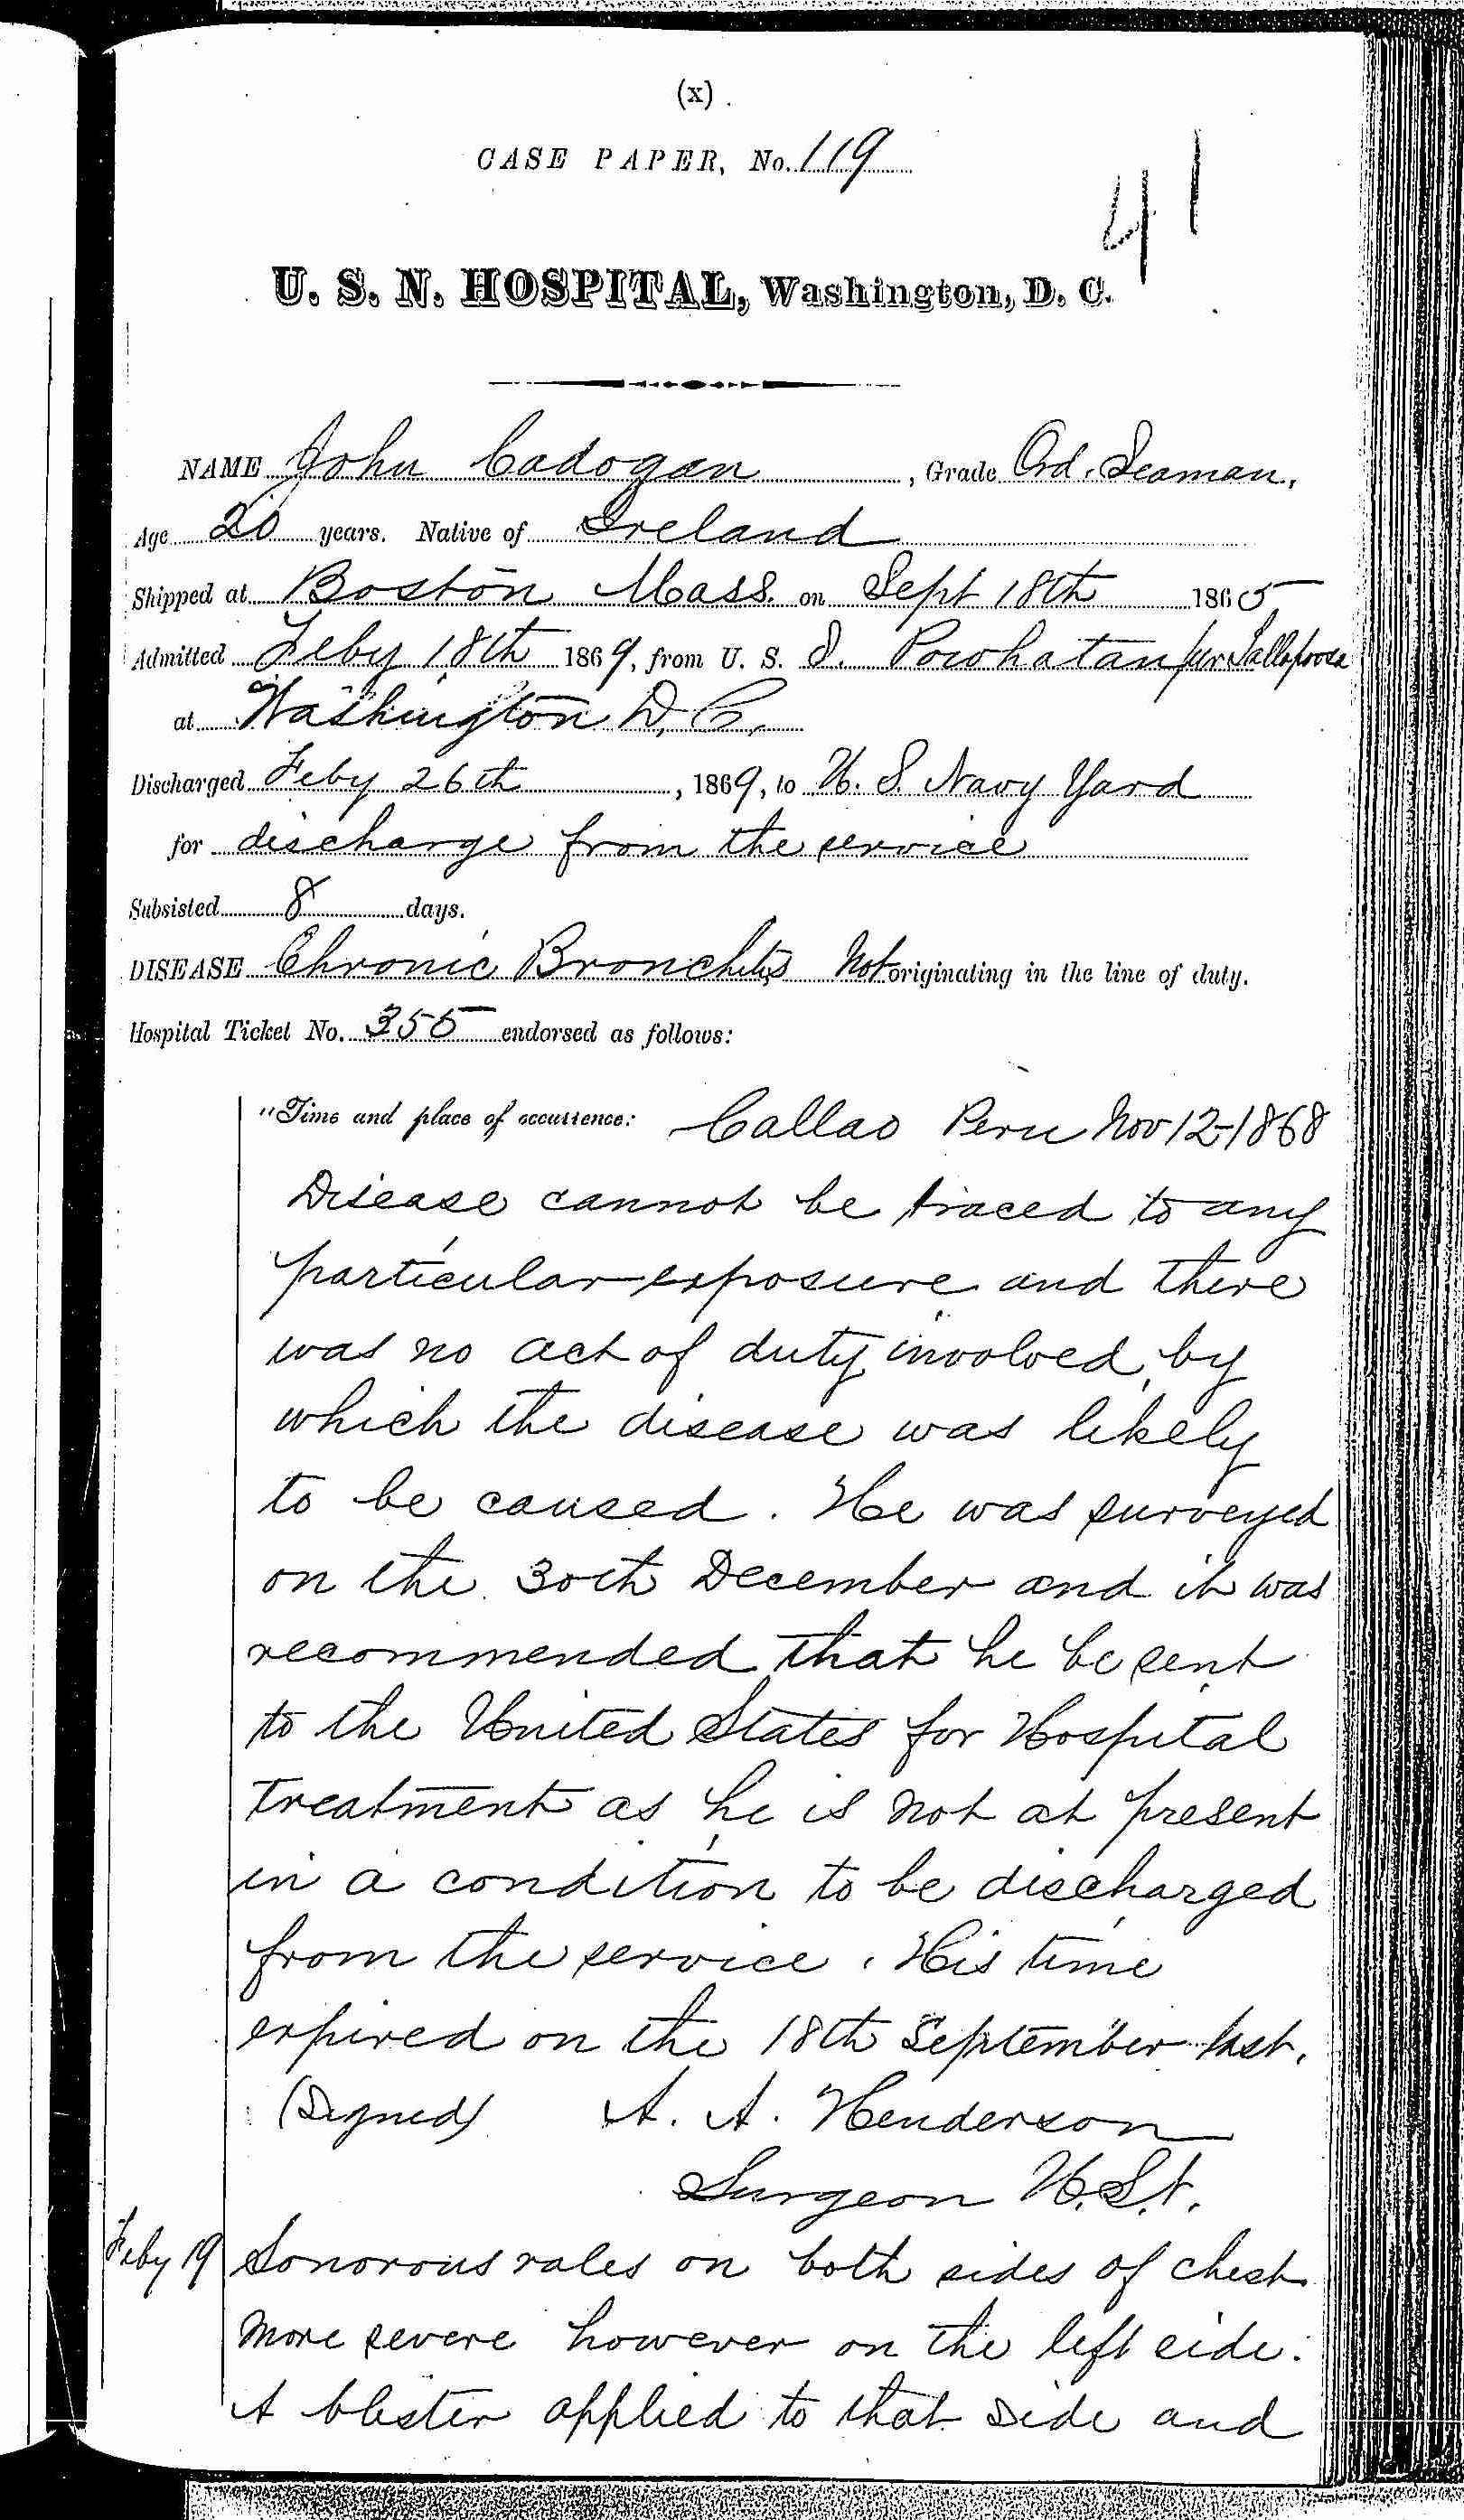 Entry for John Cadogan (page 1 of 3) in the log Hospital Tickets and Case Papers - Naval Hospital - Washington, D.C. - 1868-69